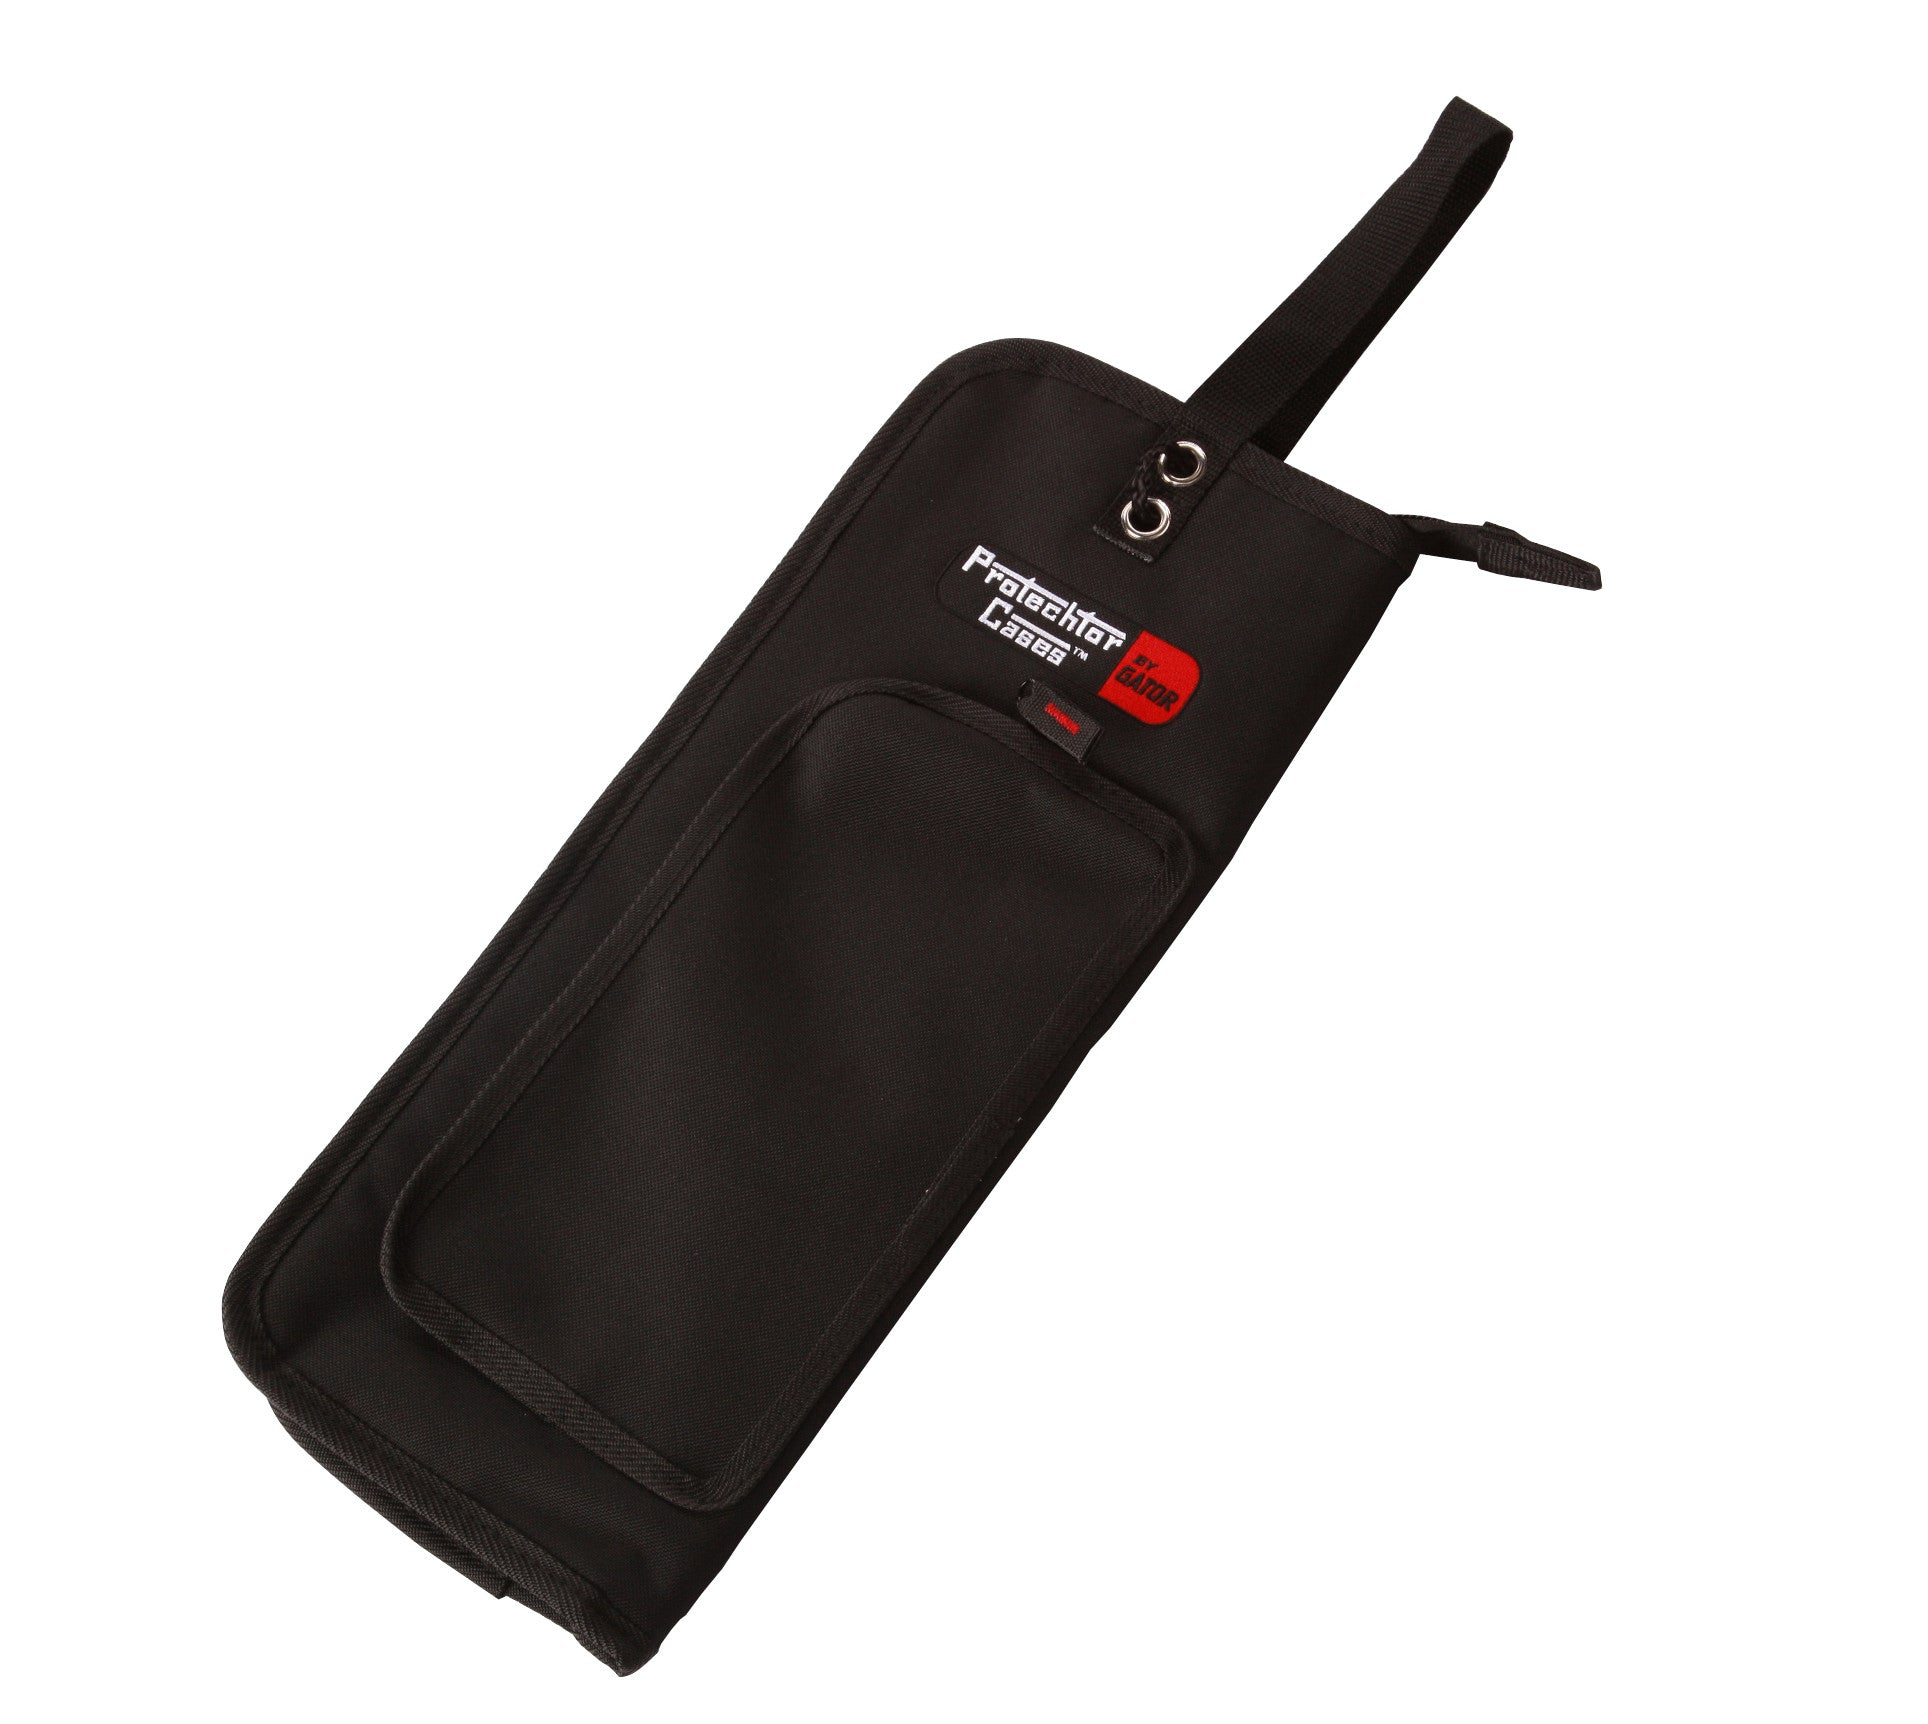 Protechtor Stick Bag by Gator - FREE SHIPPING